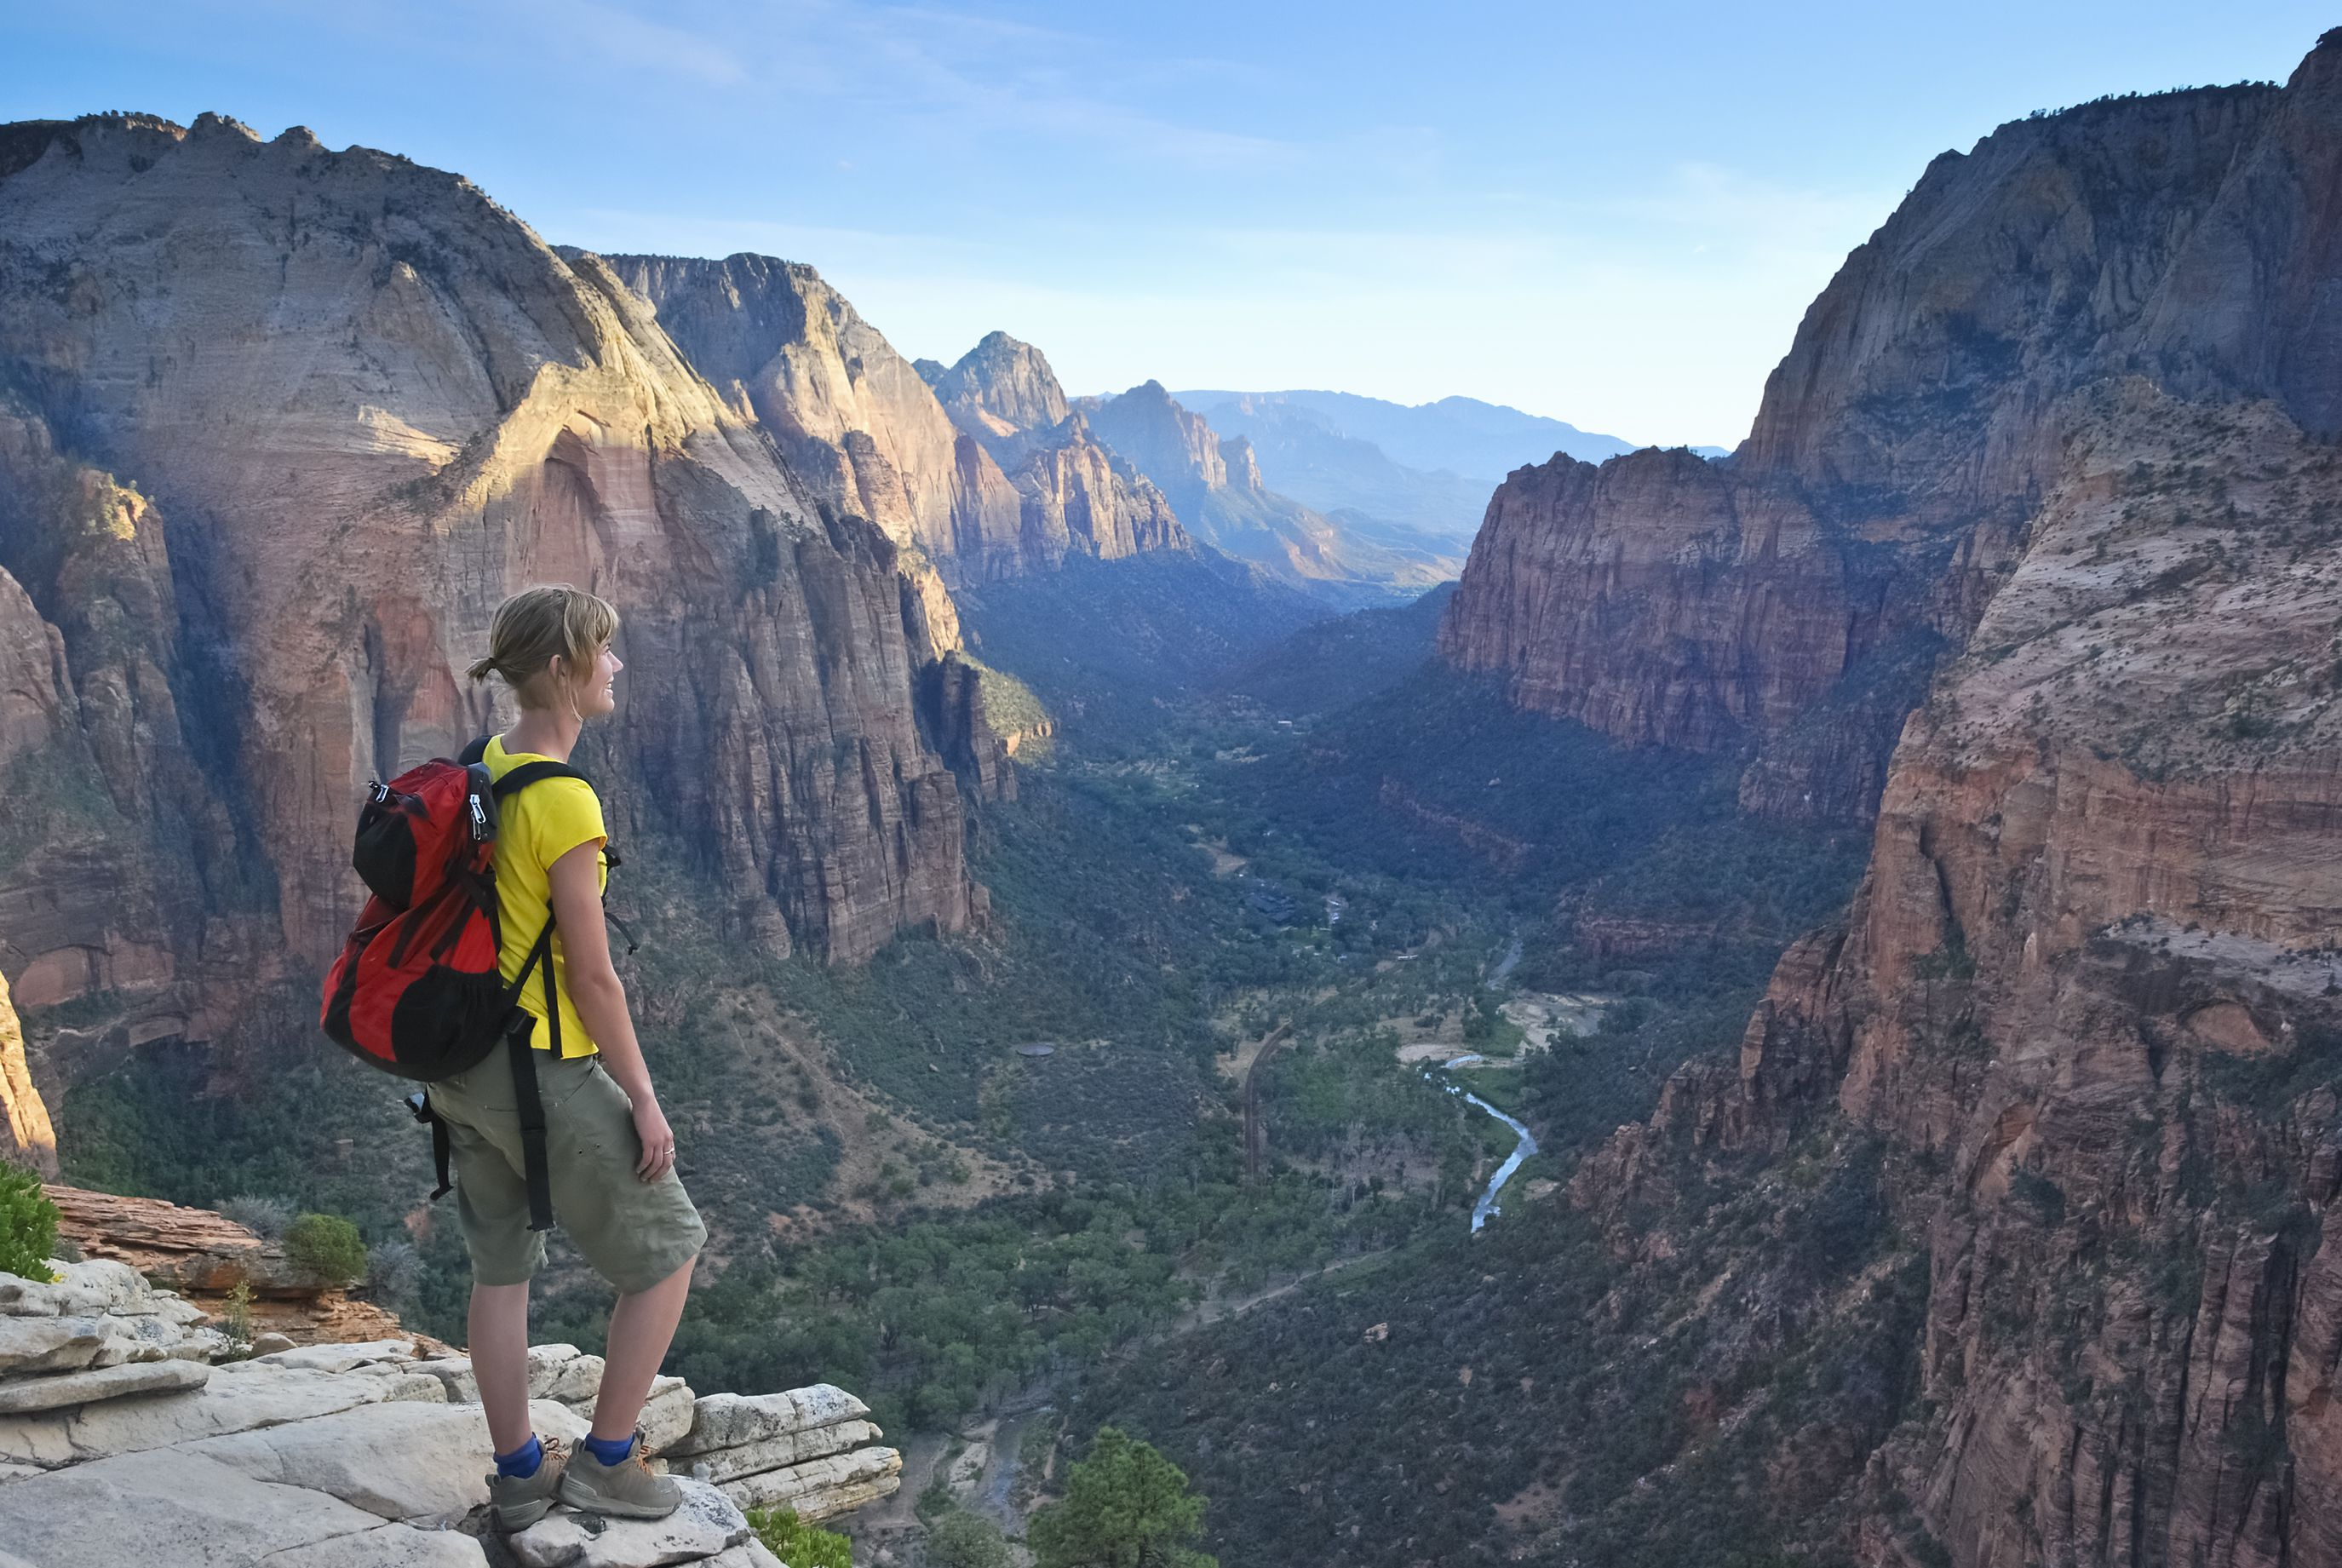 The 9 Best Hotels Near Zion National Park in 2019